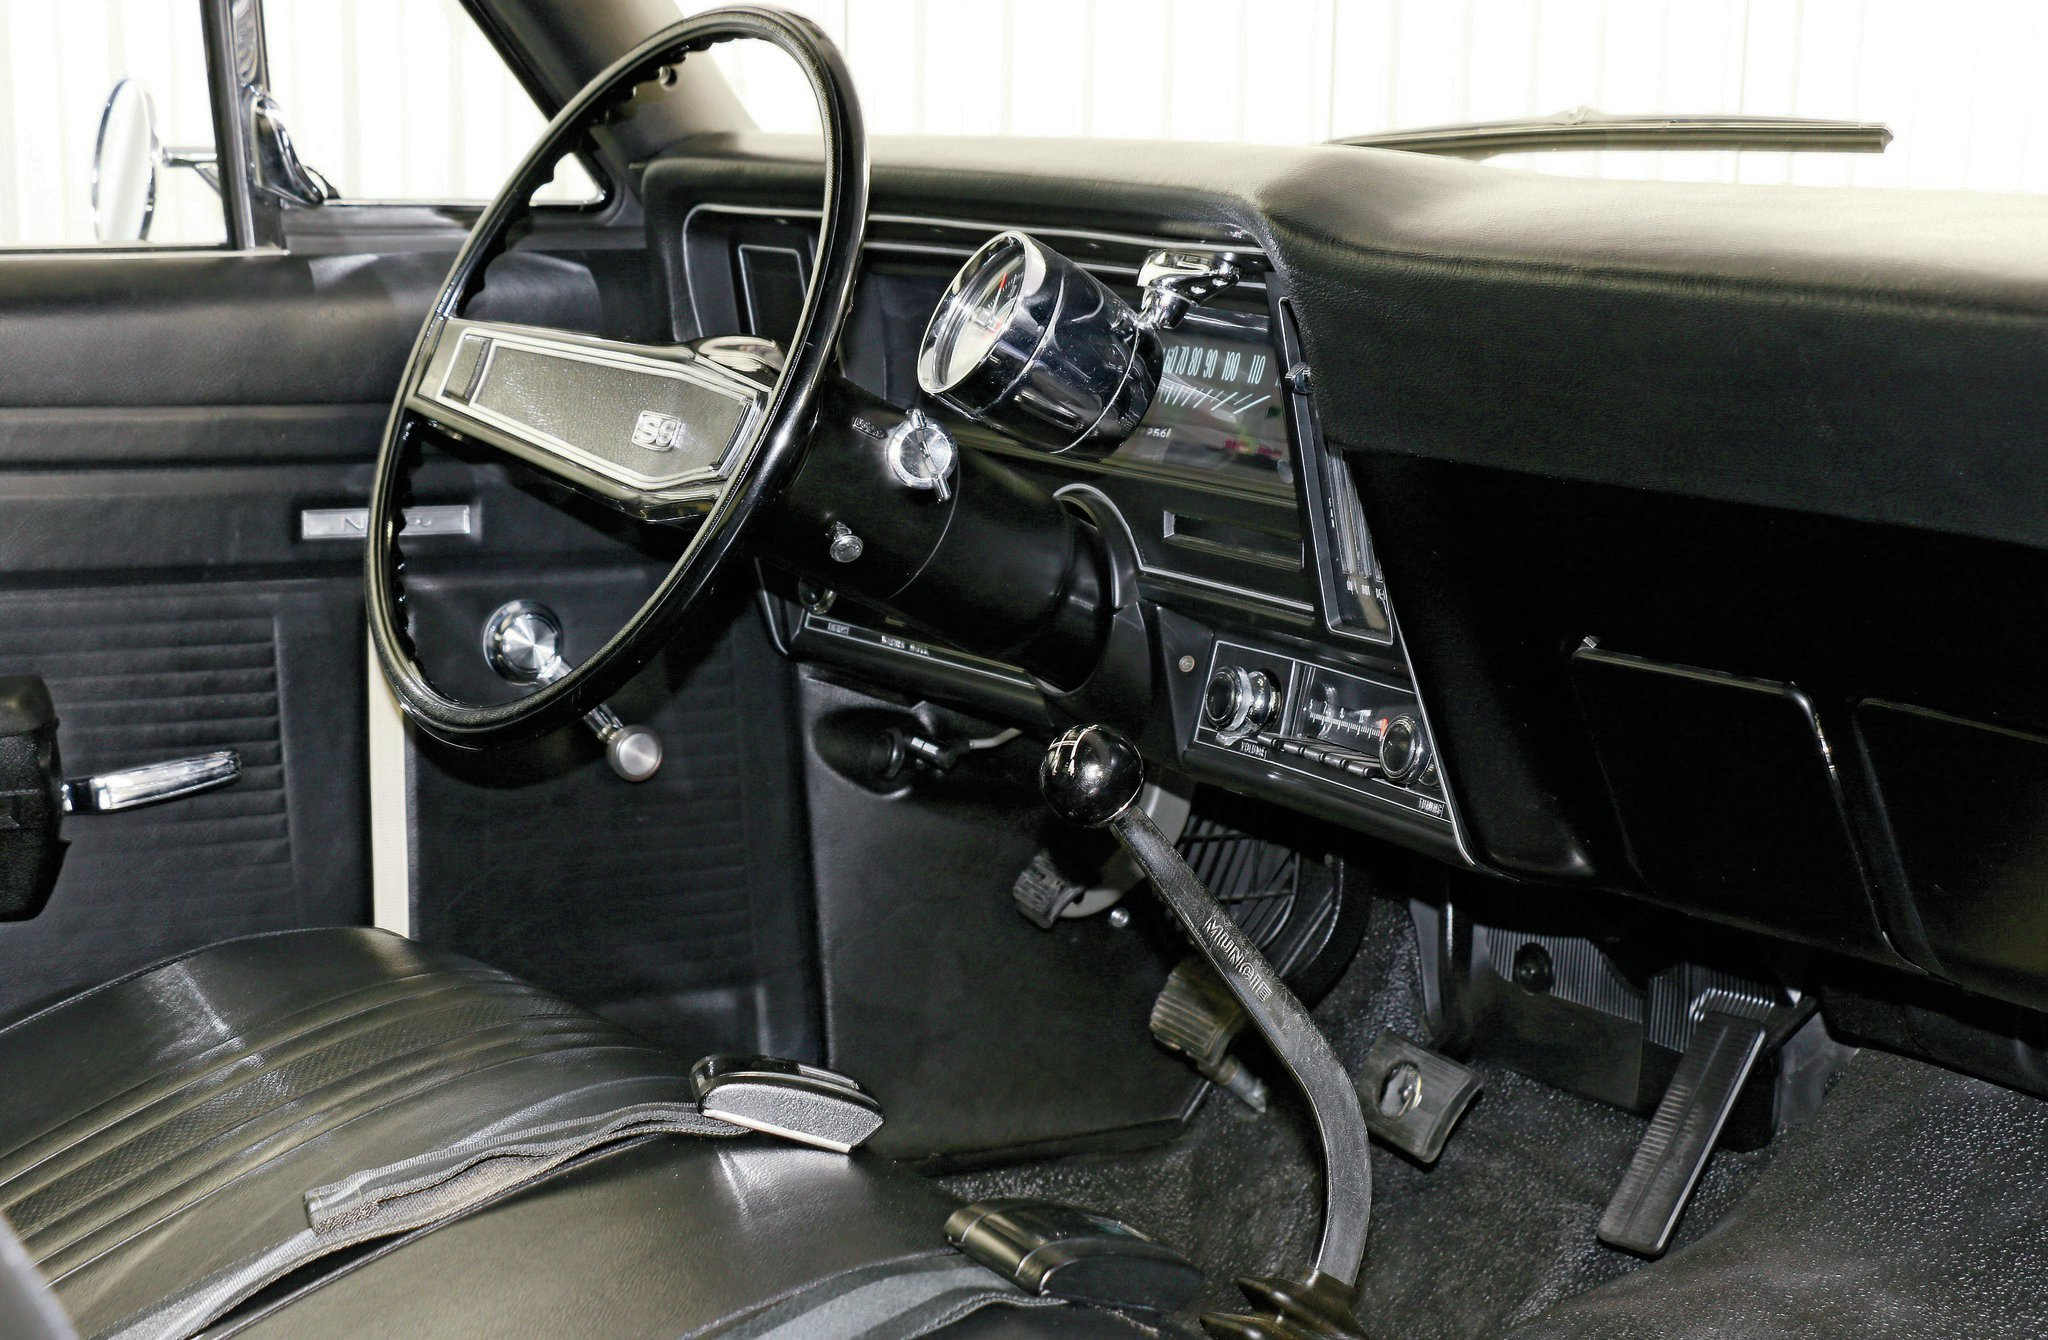 Bench seat, Muncie shifter, and Stewart Warner tach amount to simple, less-is-more beauty. Muncie shifters were inferior and were often replaced with Hurst shifters.